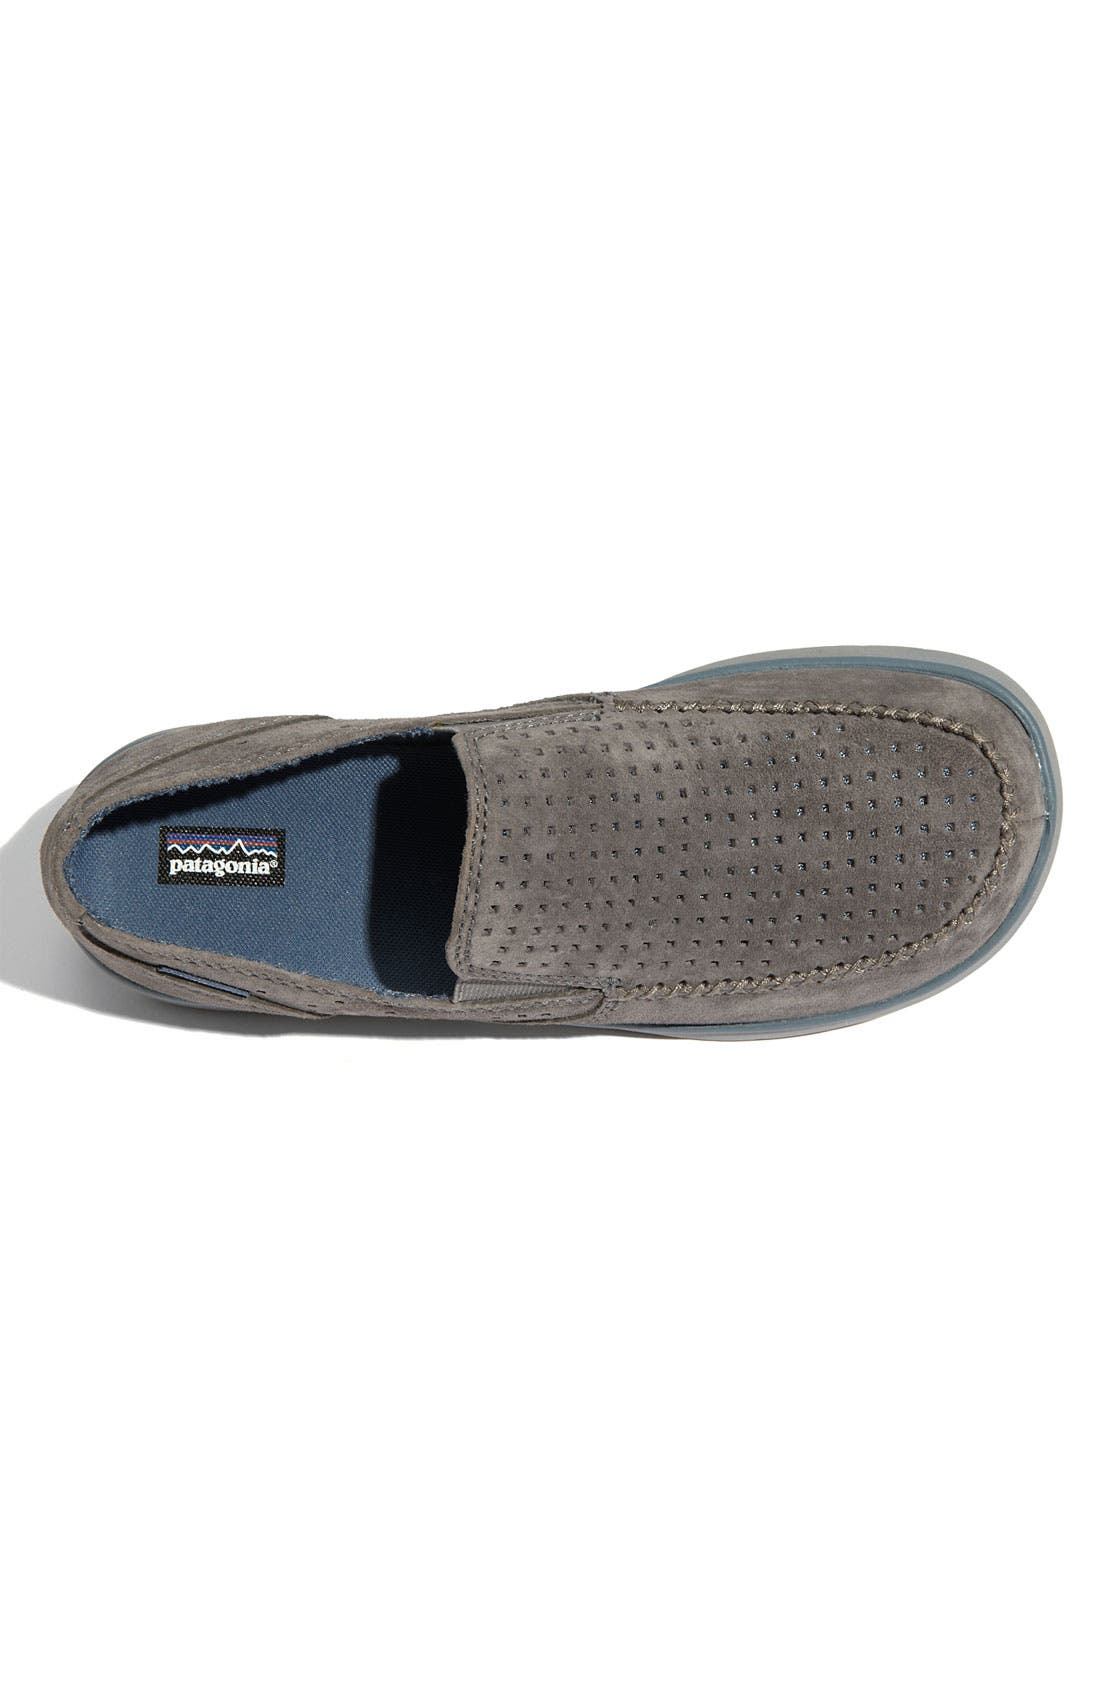 PATAGONIA,                             'Maui Air' Slip-On,                             Alternate thumbnail 4, color,                             020